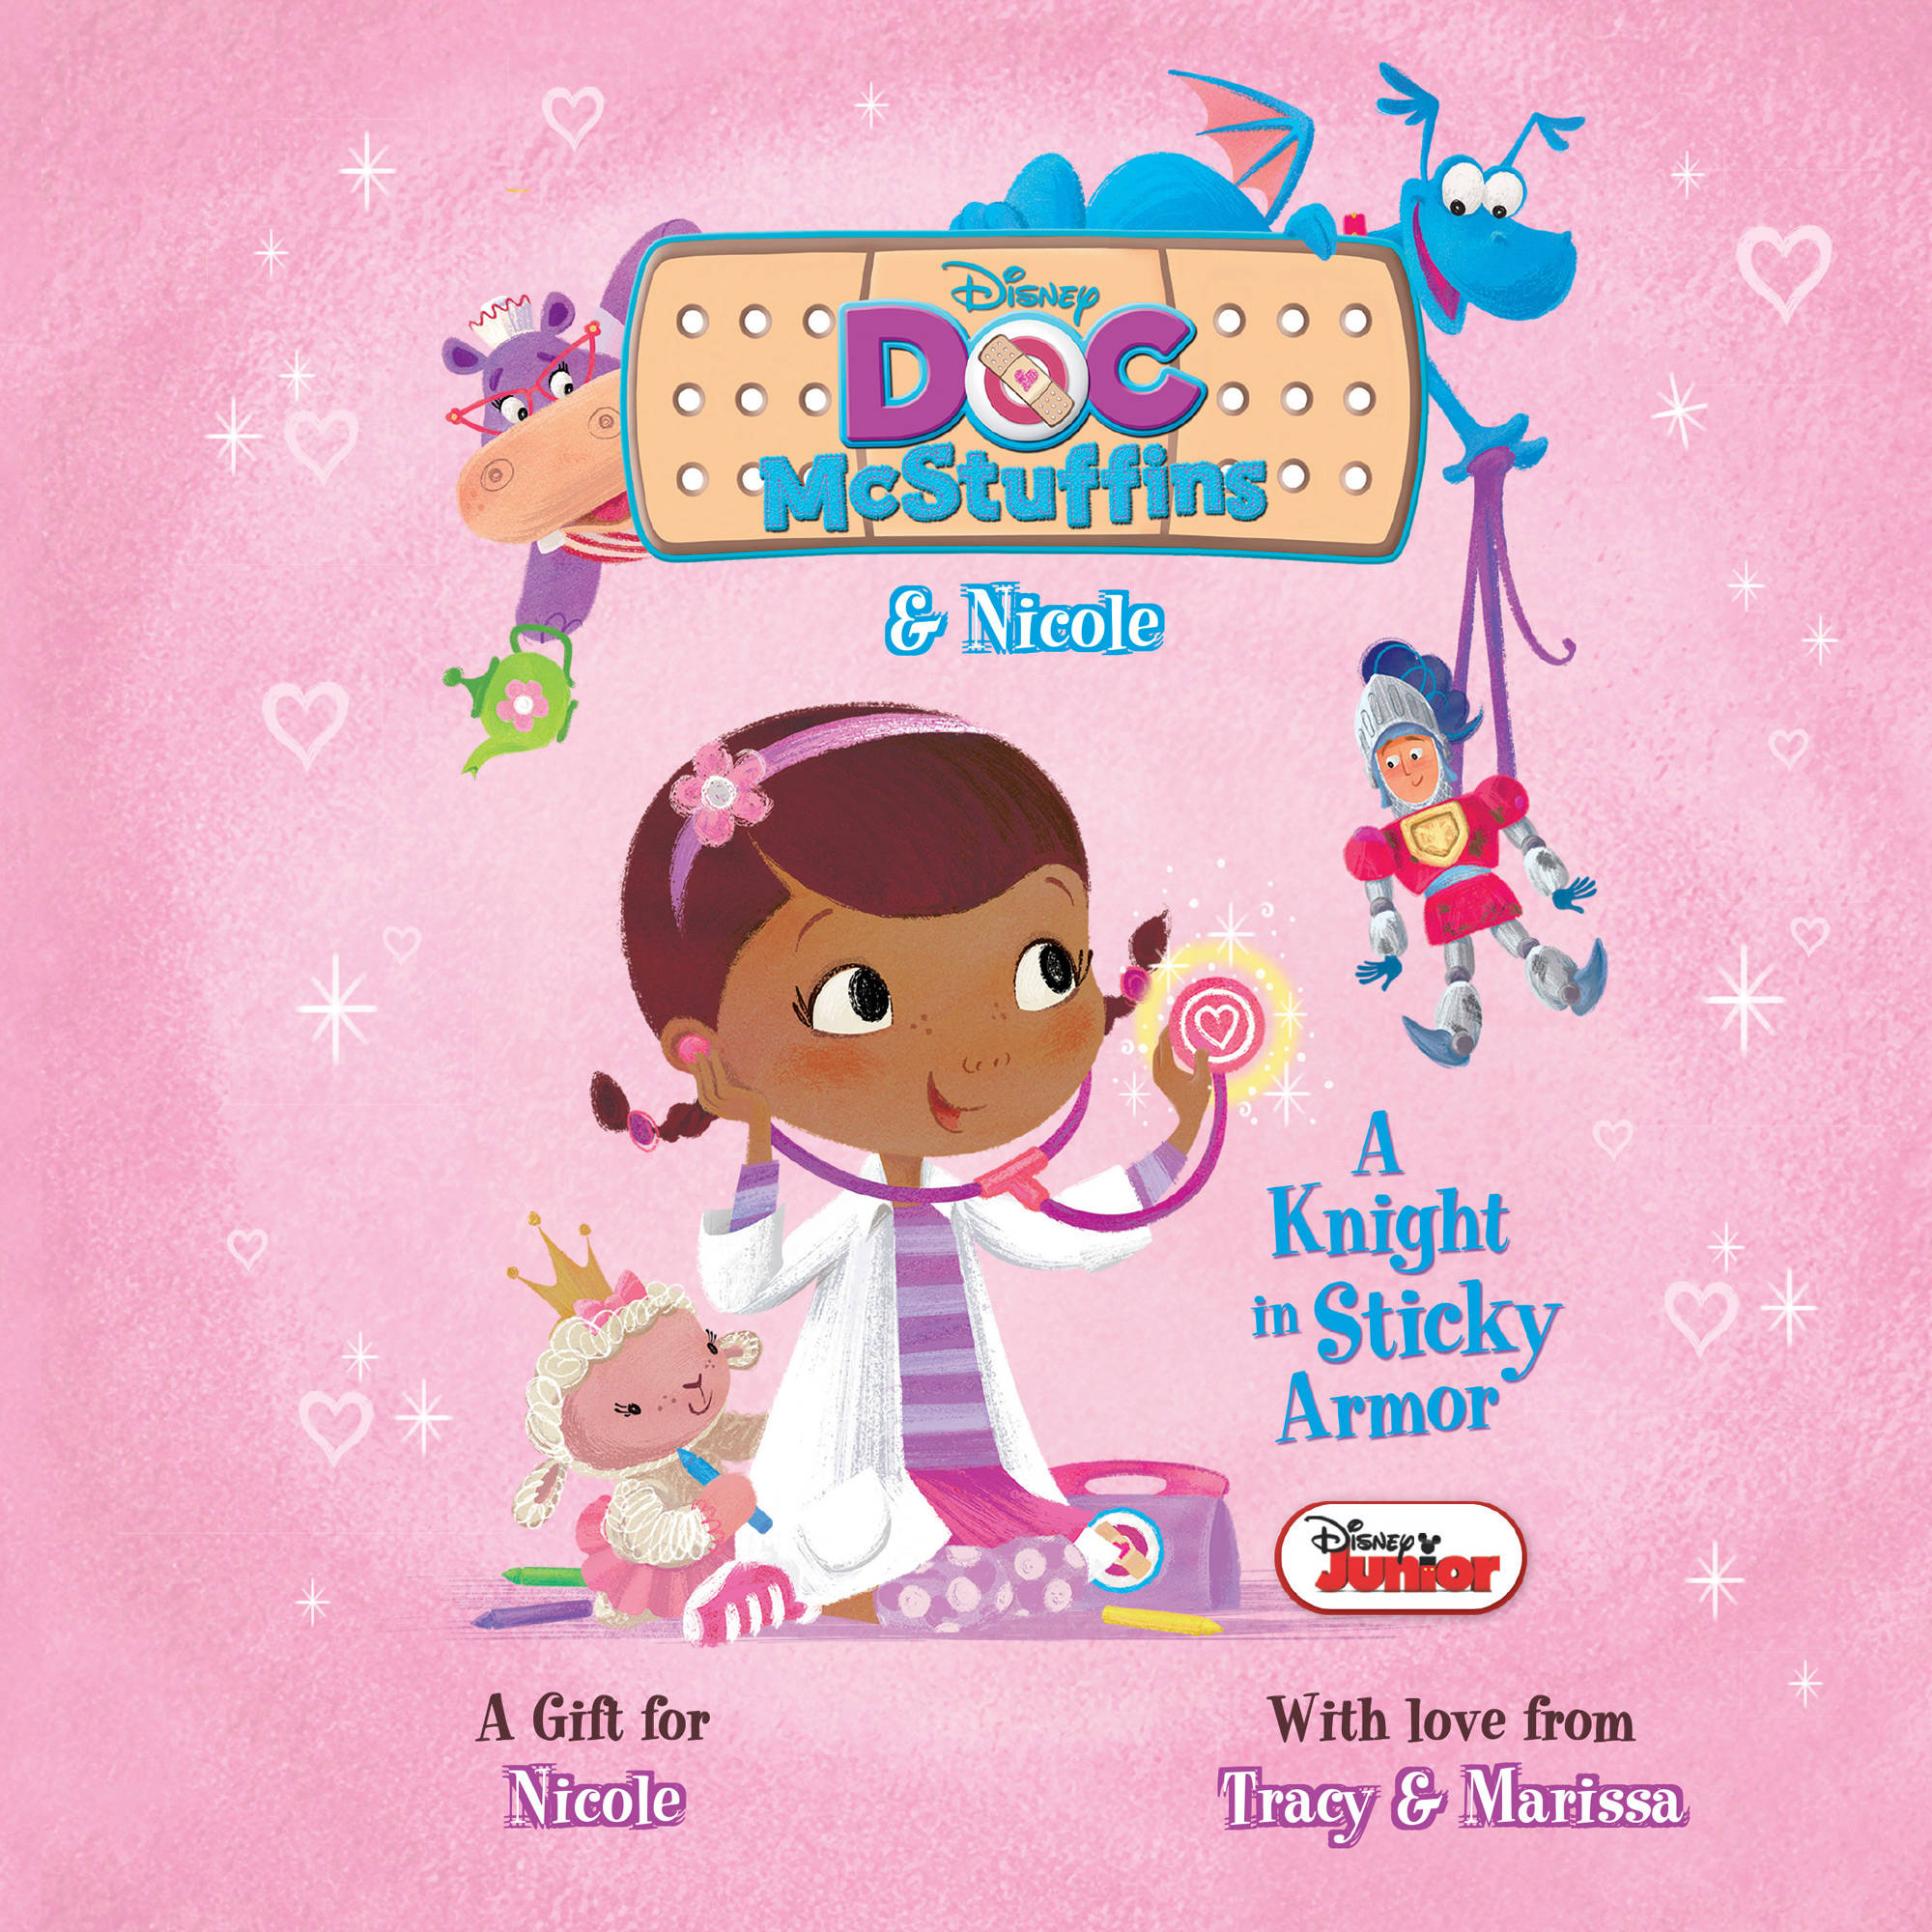 Personalized Book - Disney's Doc McStuffins: A Knight in Sticky Armor